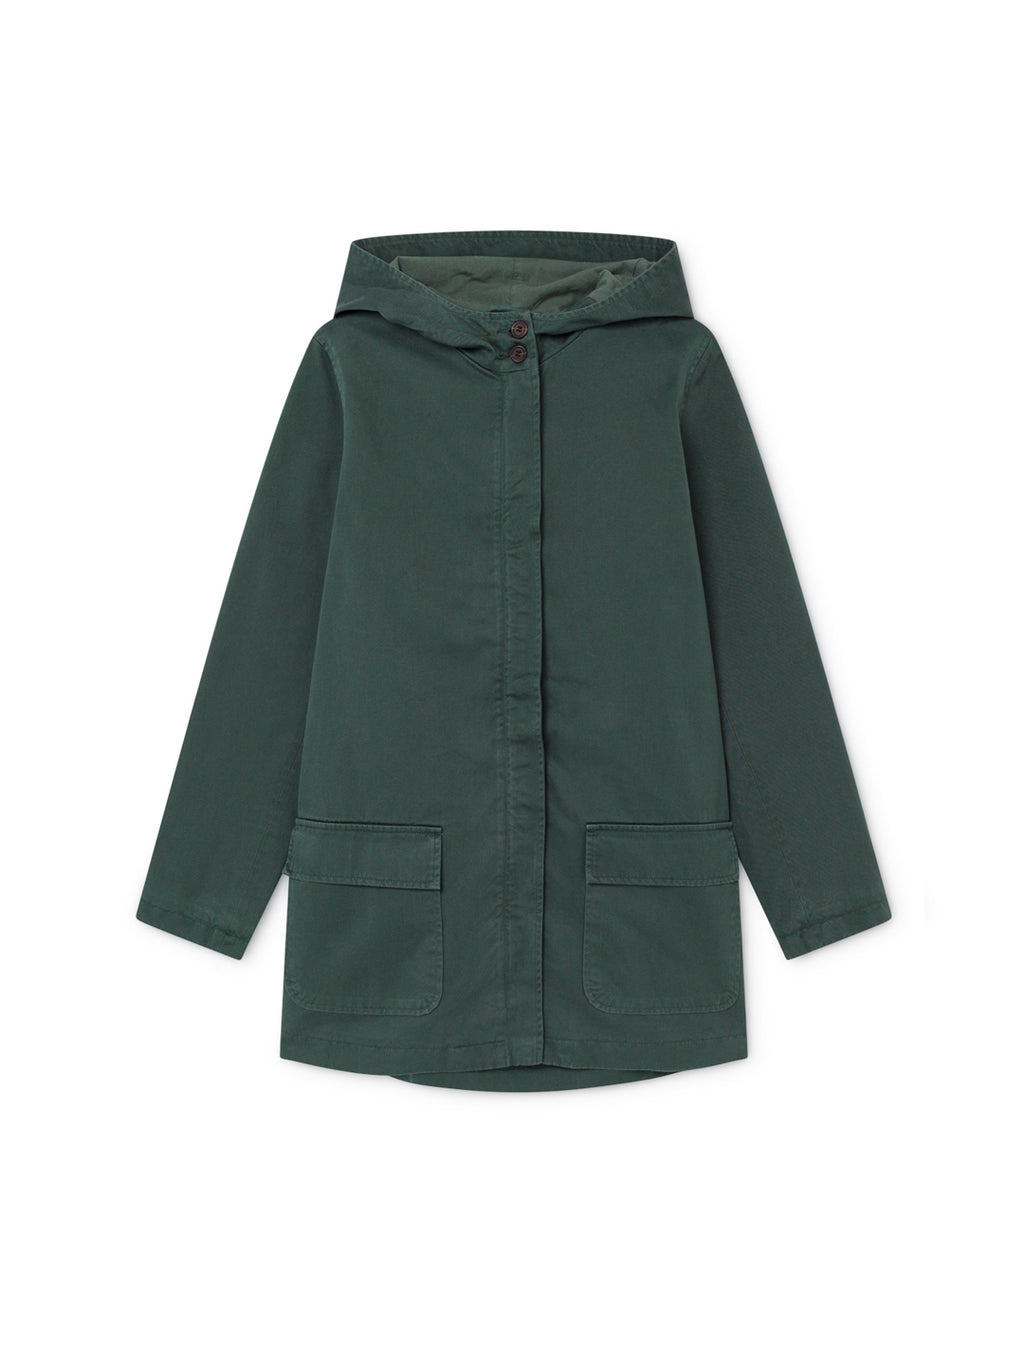 TWOTHIRDS Womens Jacket: Skorpio - Dark Green front